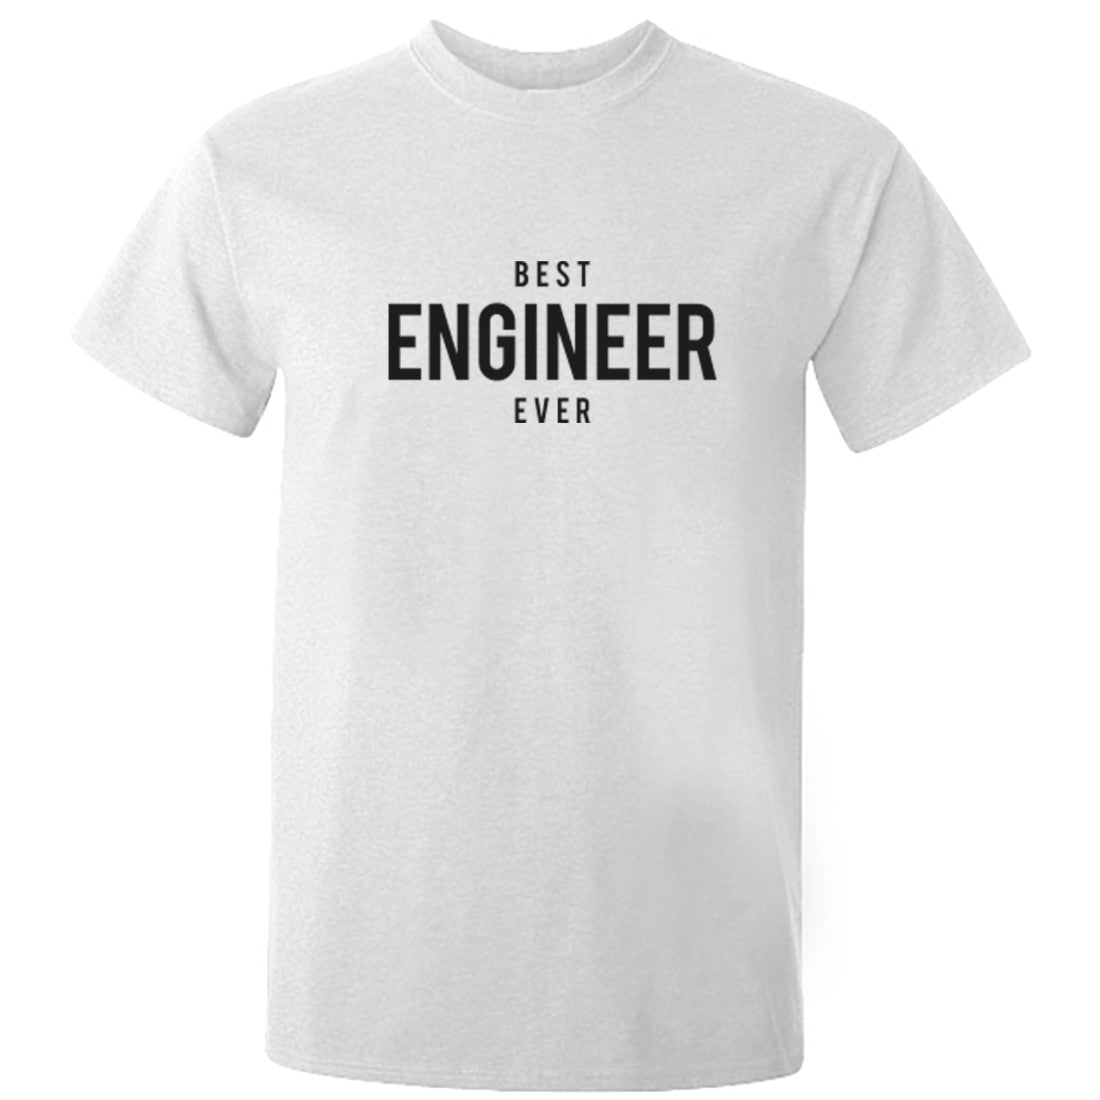 Best Engineer Ever Unisex Fit T-Shirt K1513